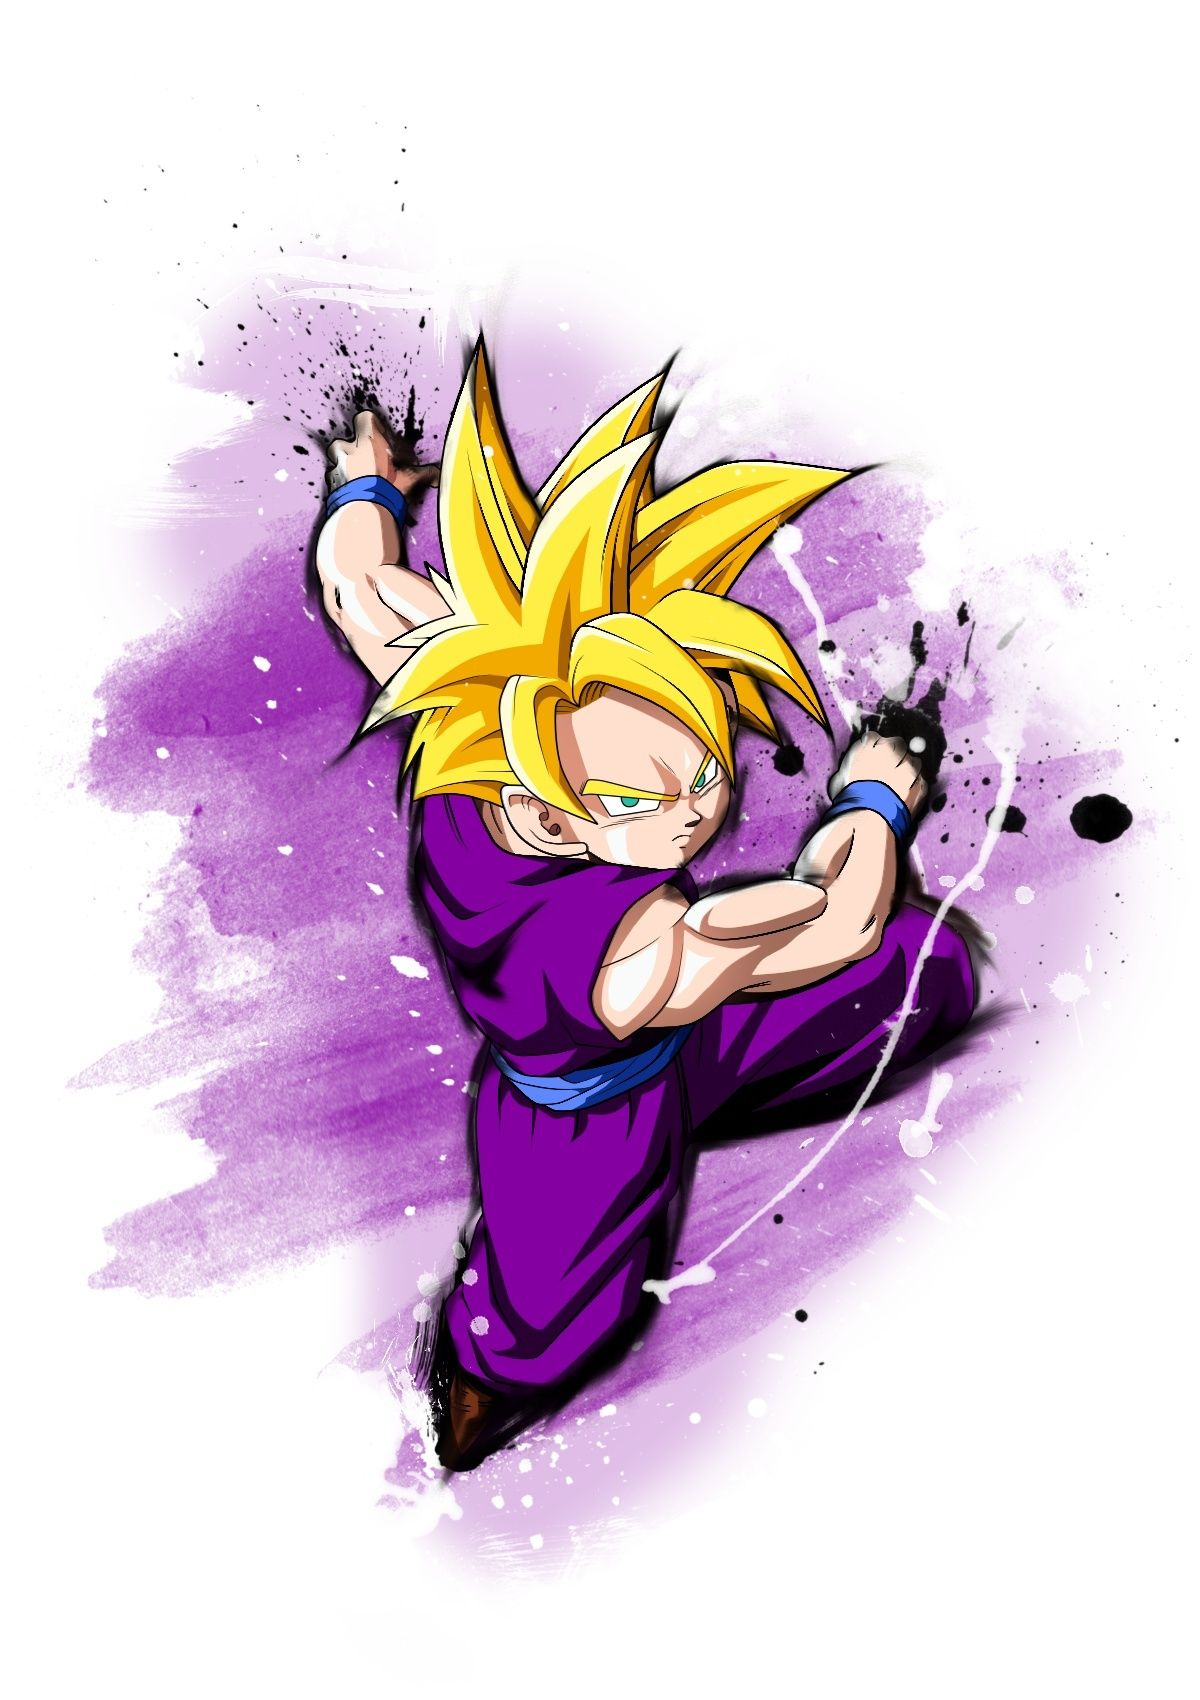 Galerie de Gohan - Page 2 Try7-411